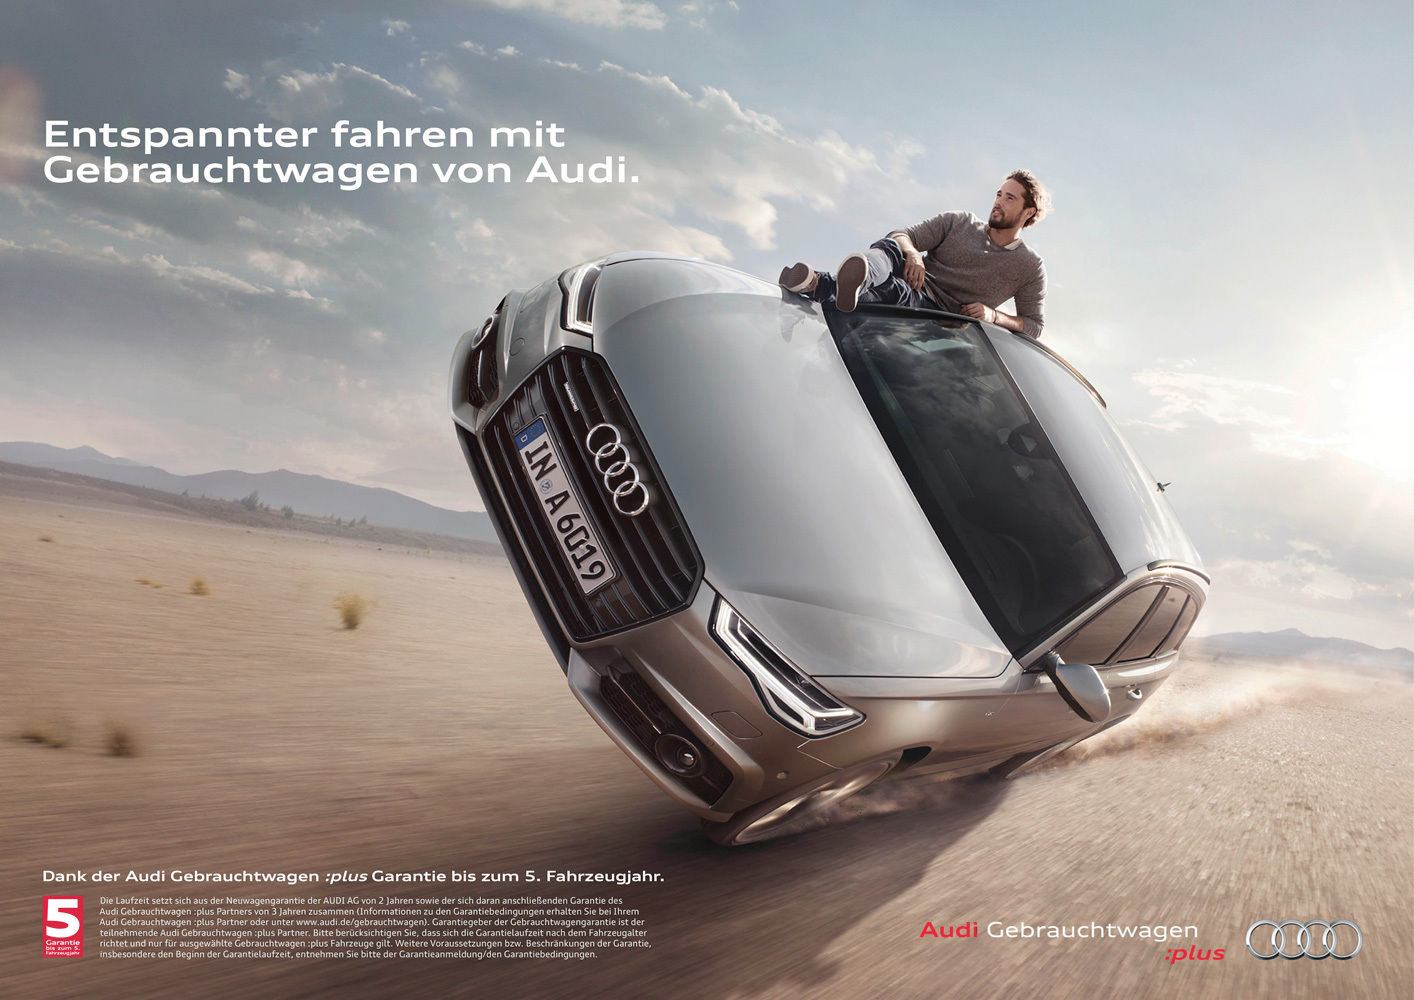 PRODUCTION WORLD (Casting Coordination) for AUDI 'EASY RIDER'